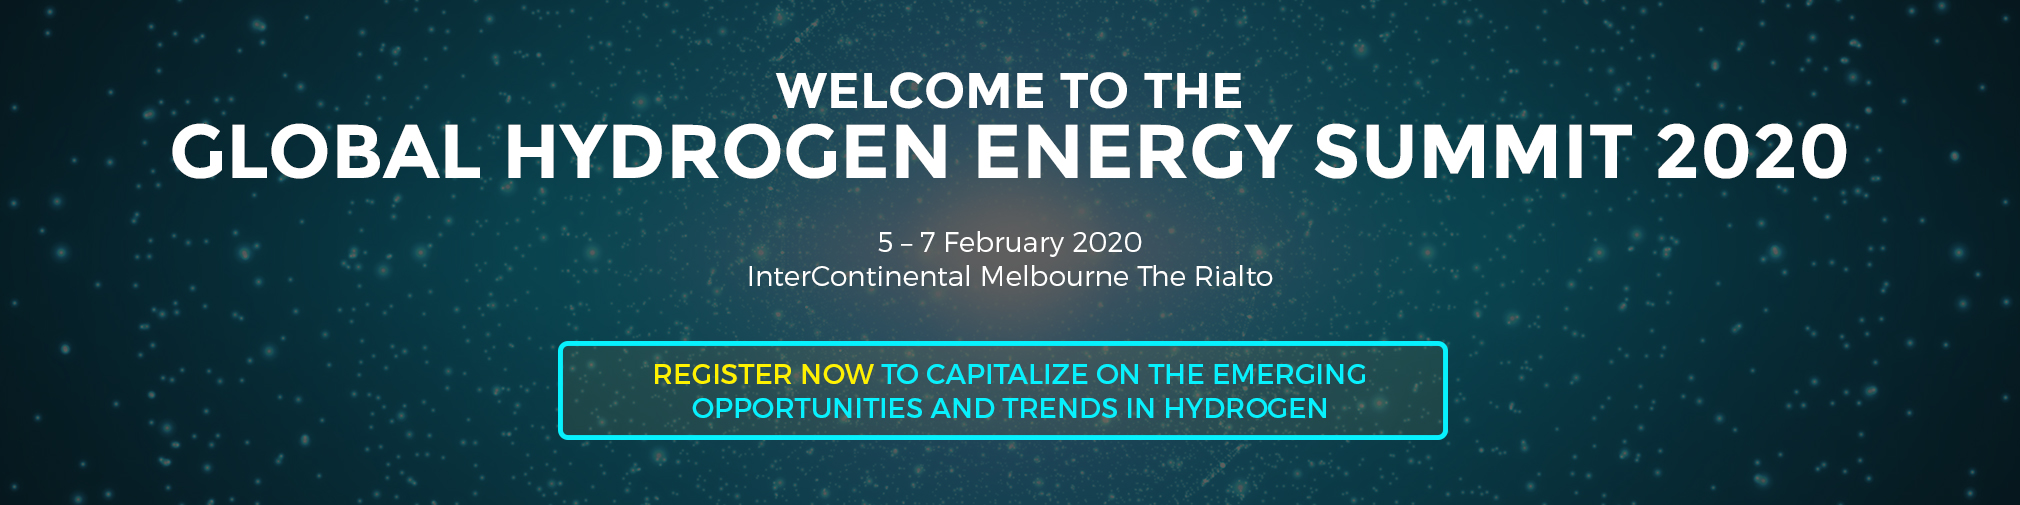 Supply And Demand Current Events 2020.Global Hydrogen Energy Summit 2020